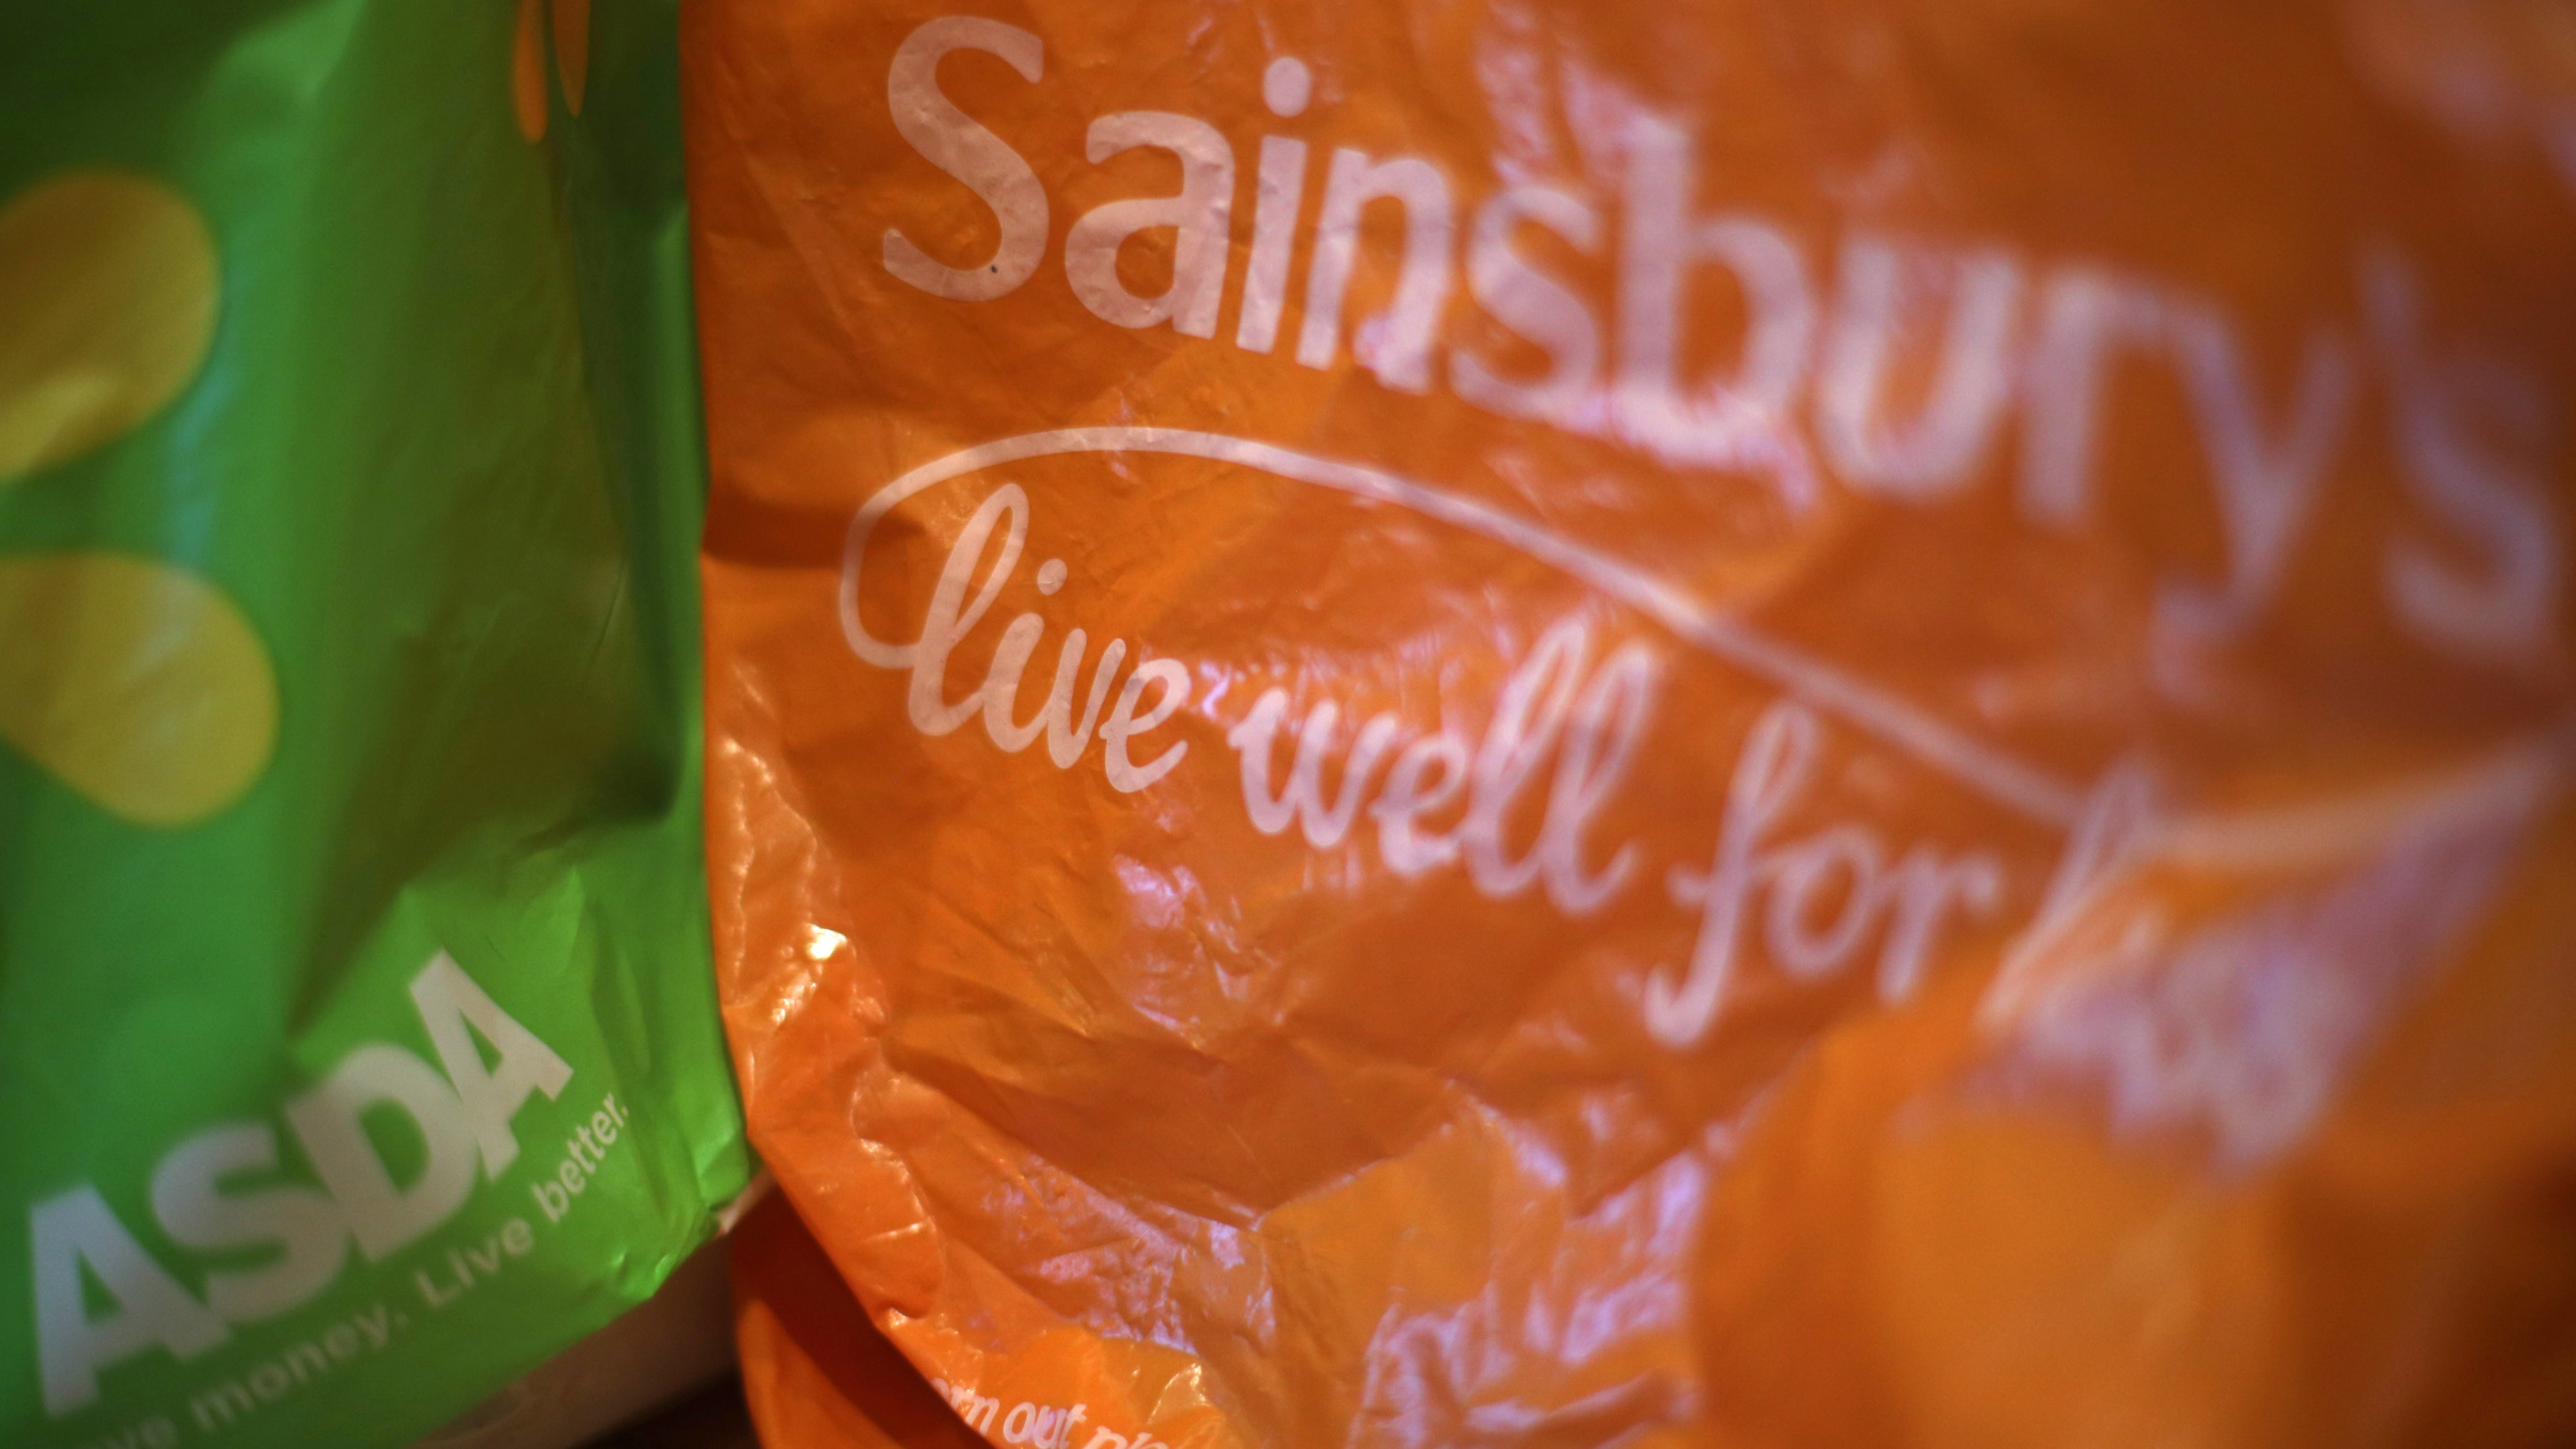 Asda and Sainsbury's merger could SELL OFF 'significant' number of stores